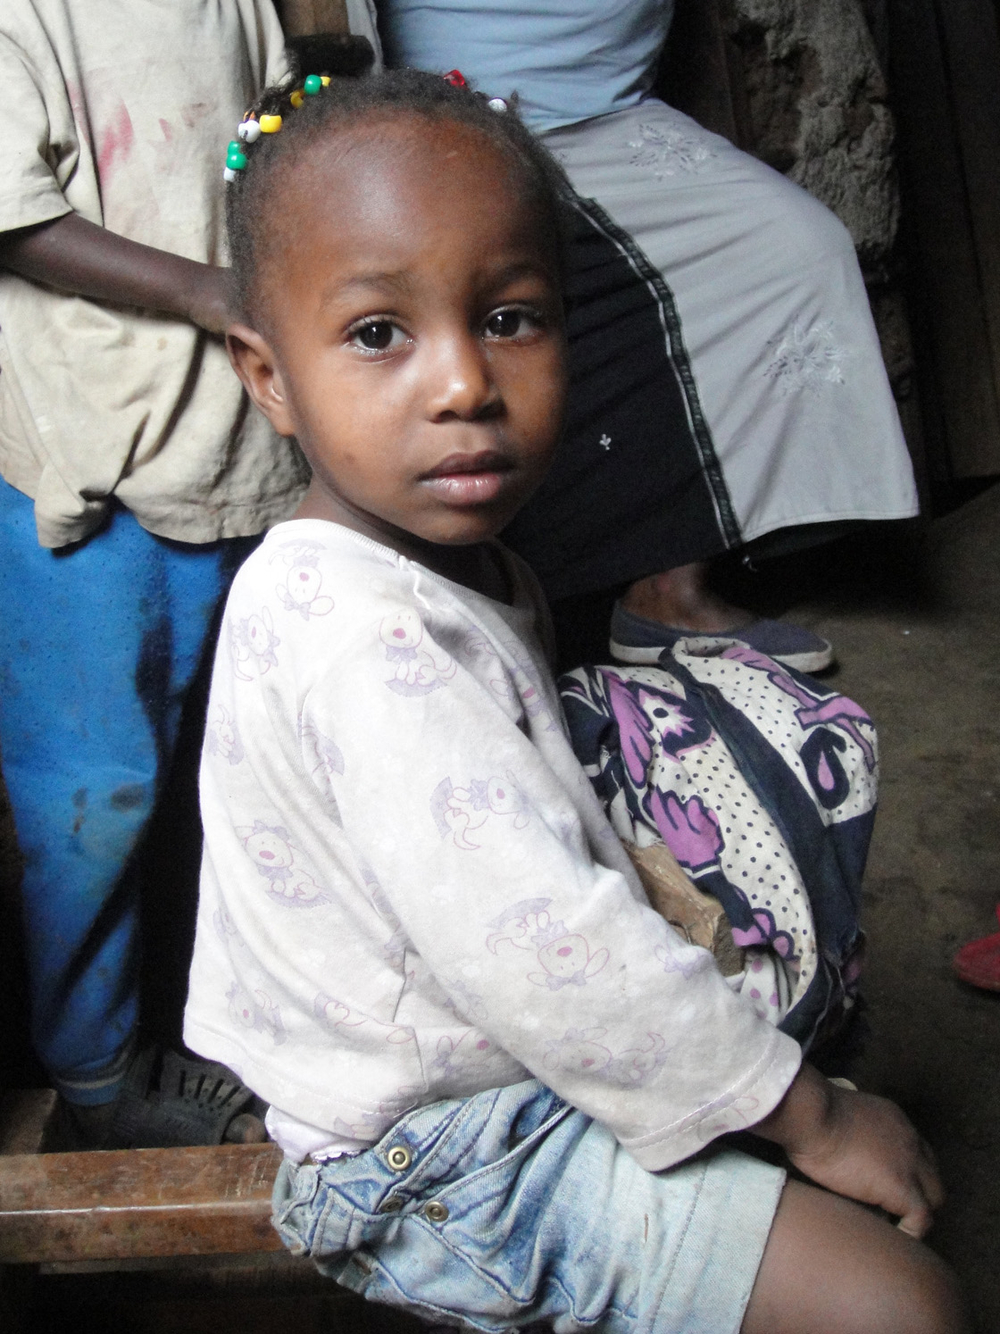 Every day in Kenya 86 children die because of diarrhoea